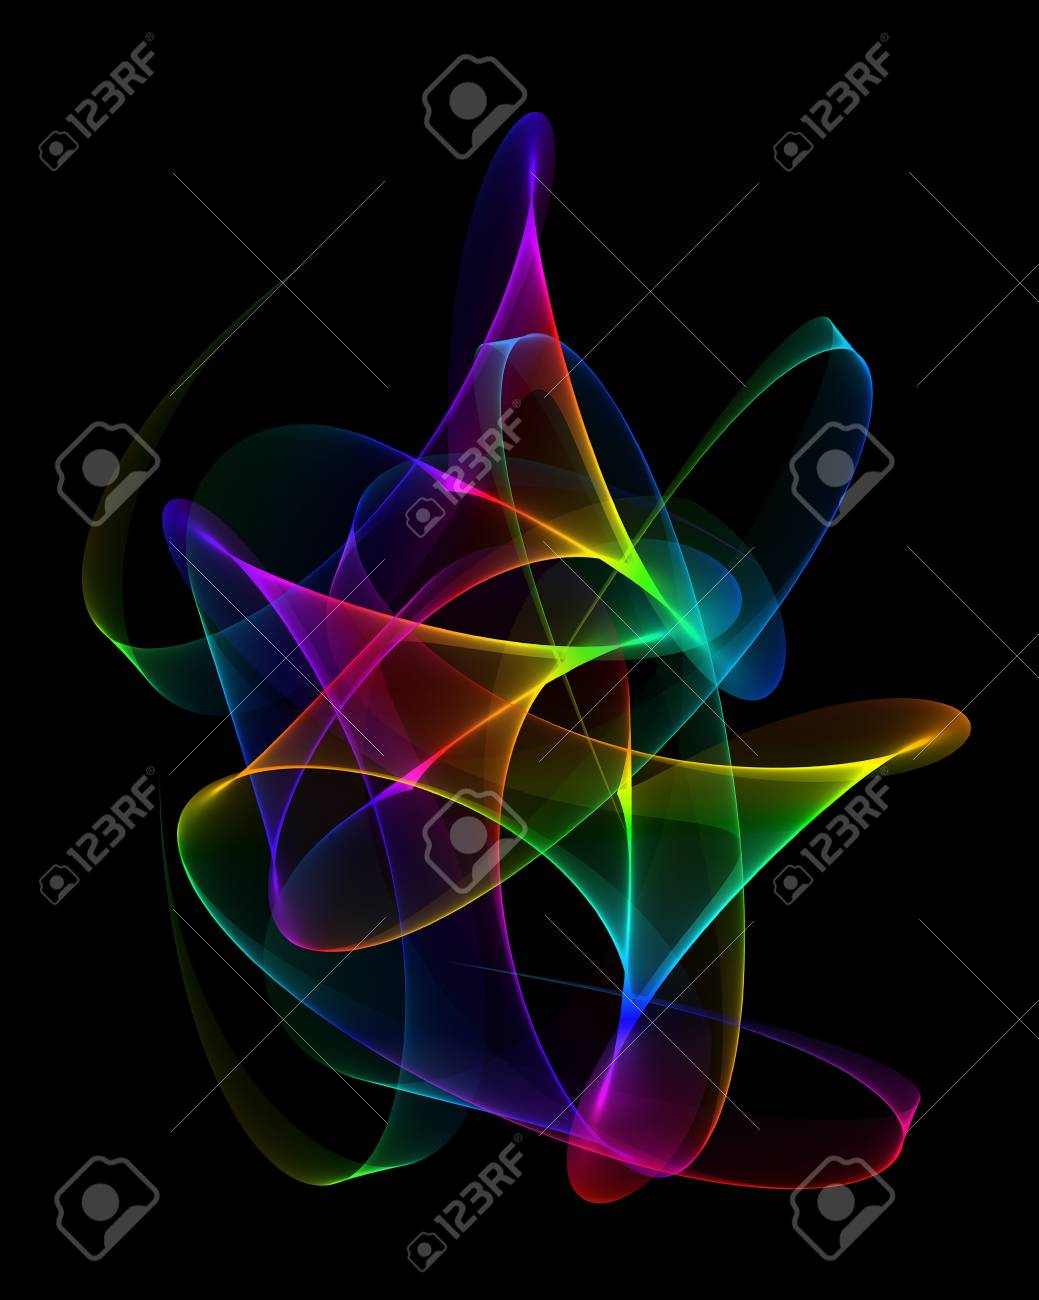 abstract wavy design on a black background Stock Photo - 9156316